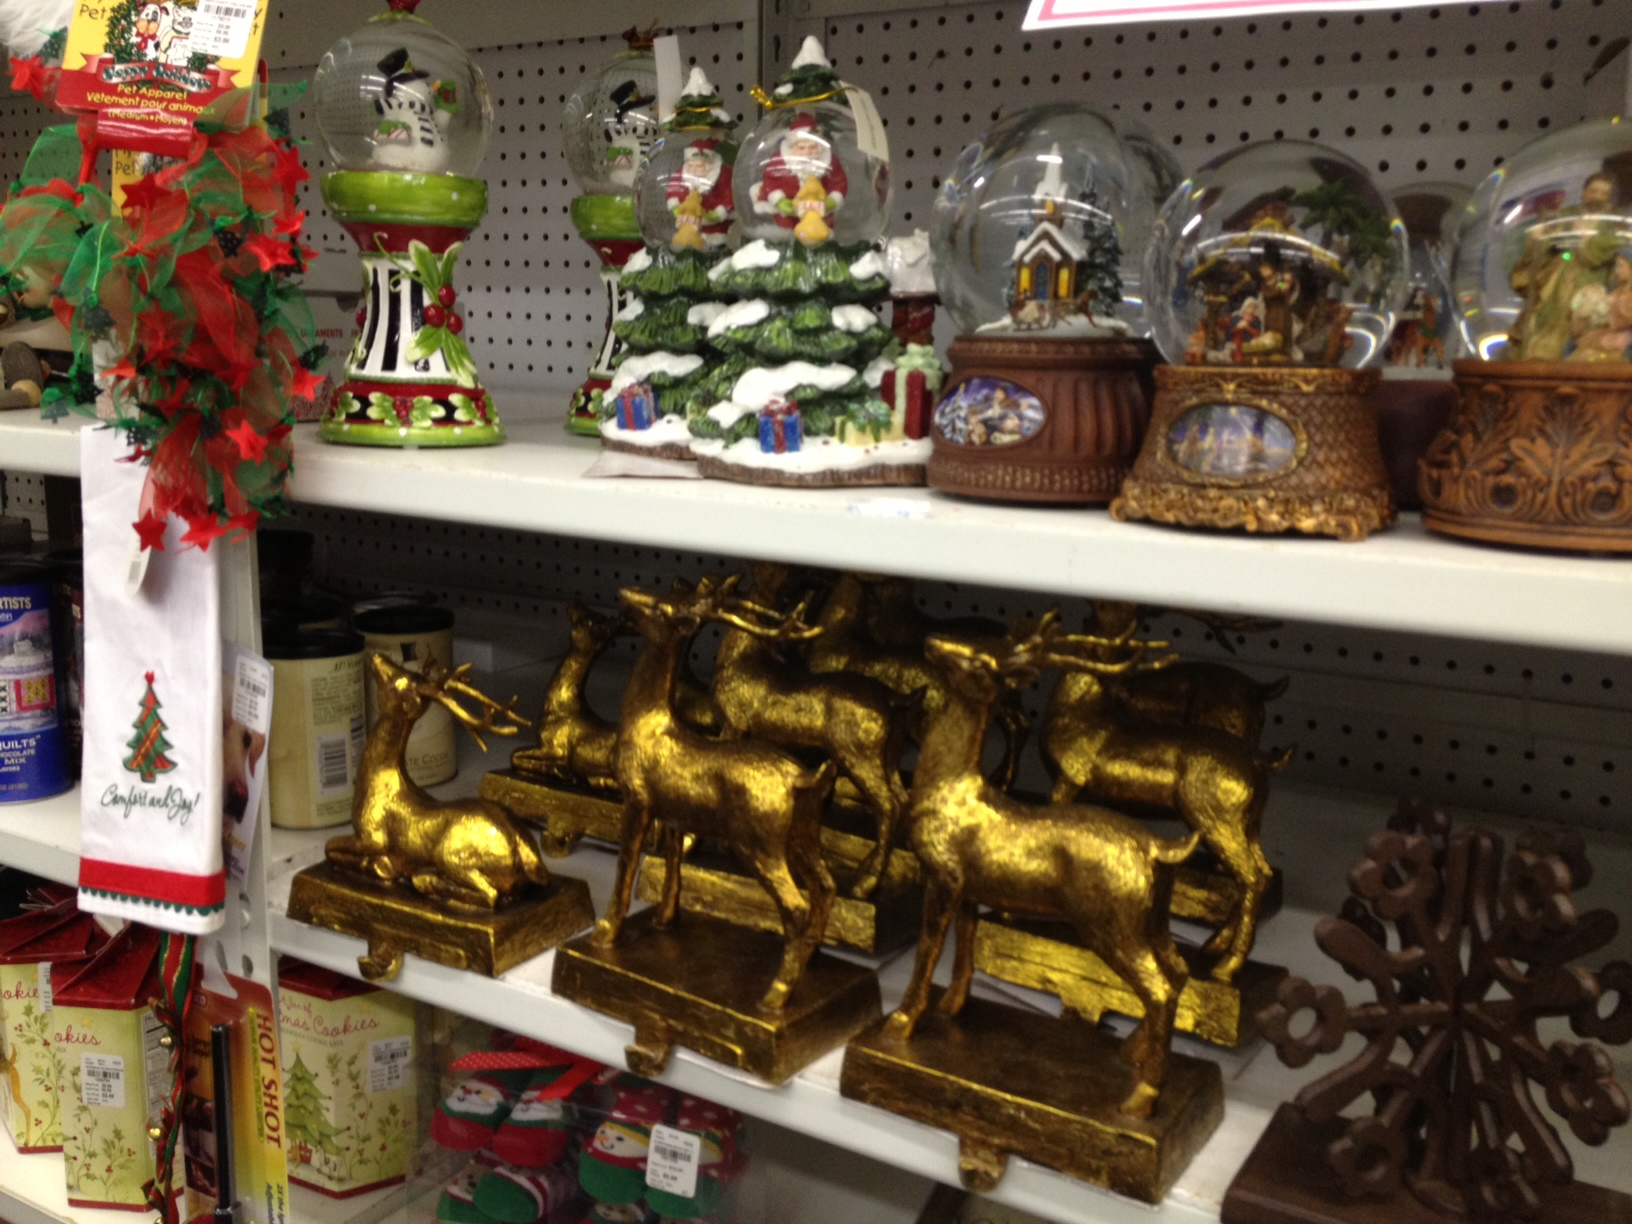 store shelf crowded with Christmas decorations